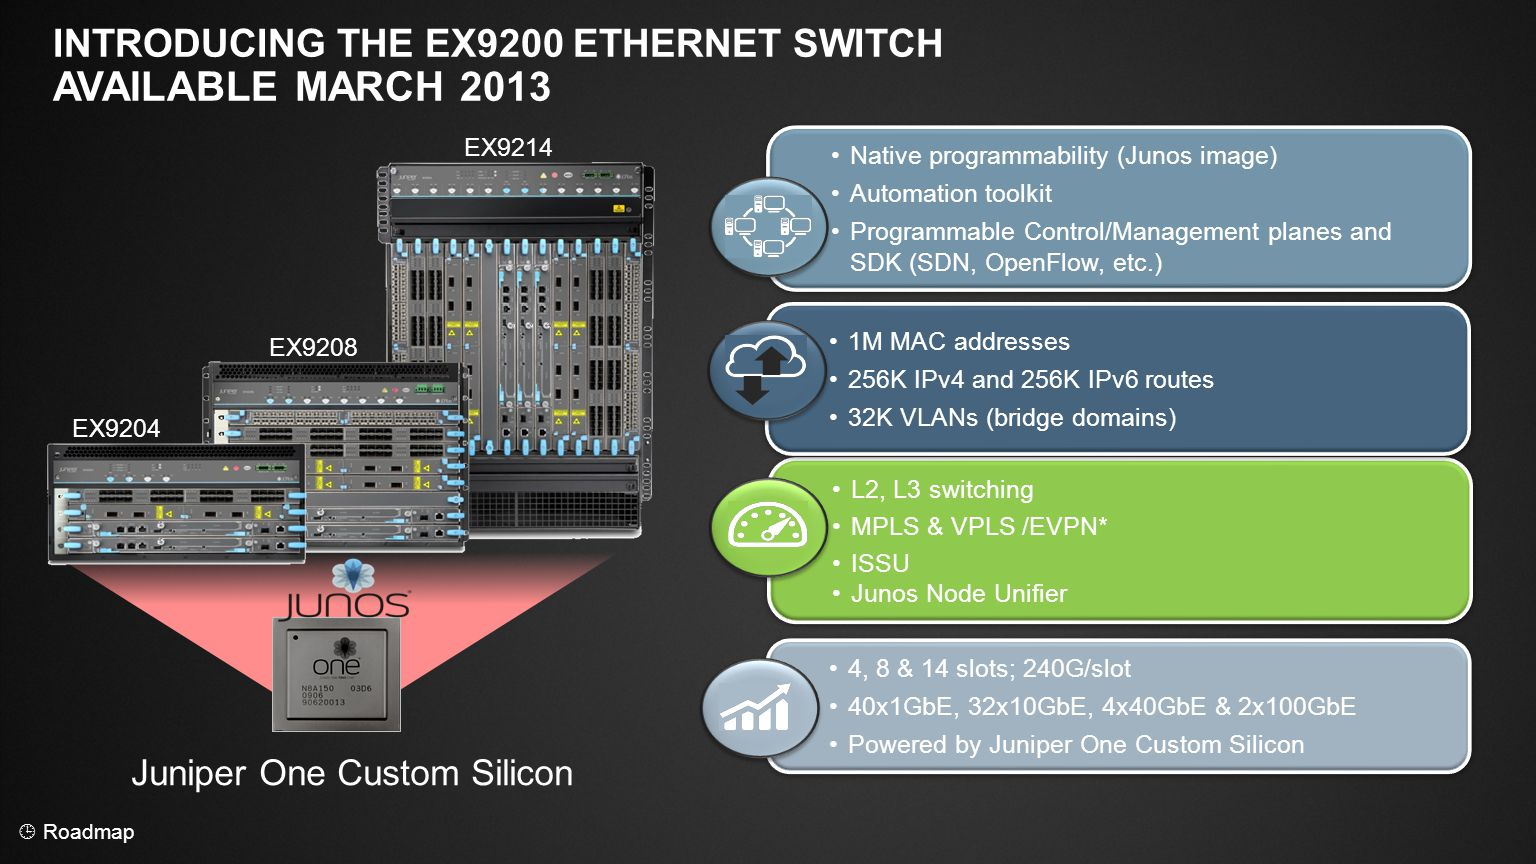 Introducing The EX9200 Ethernet Switch Available March 2013